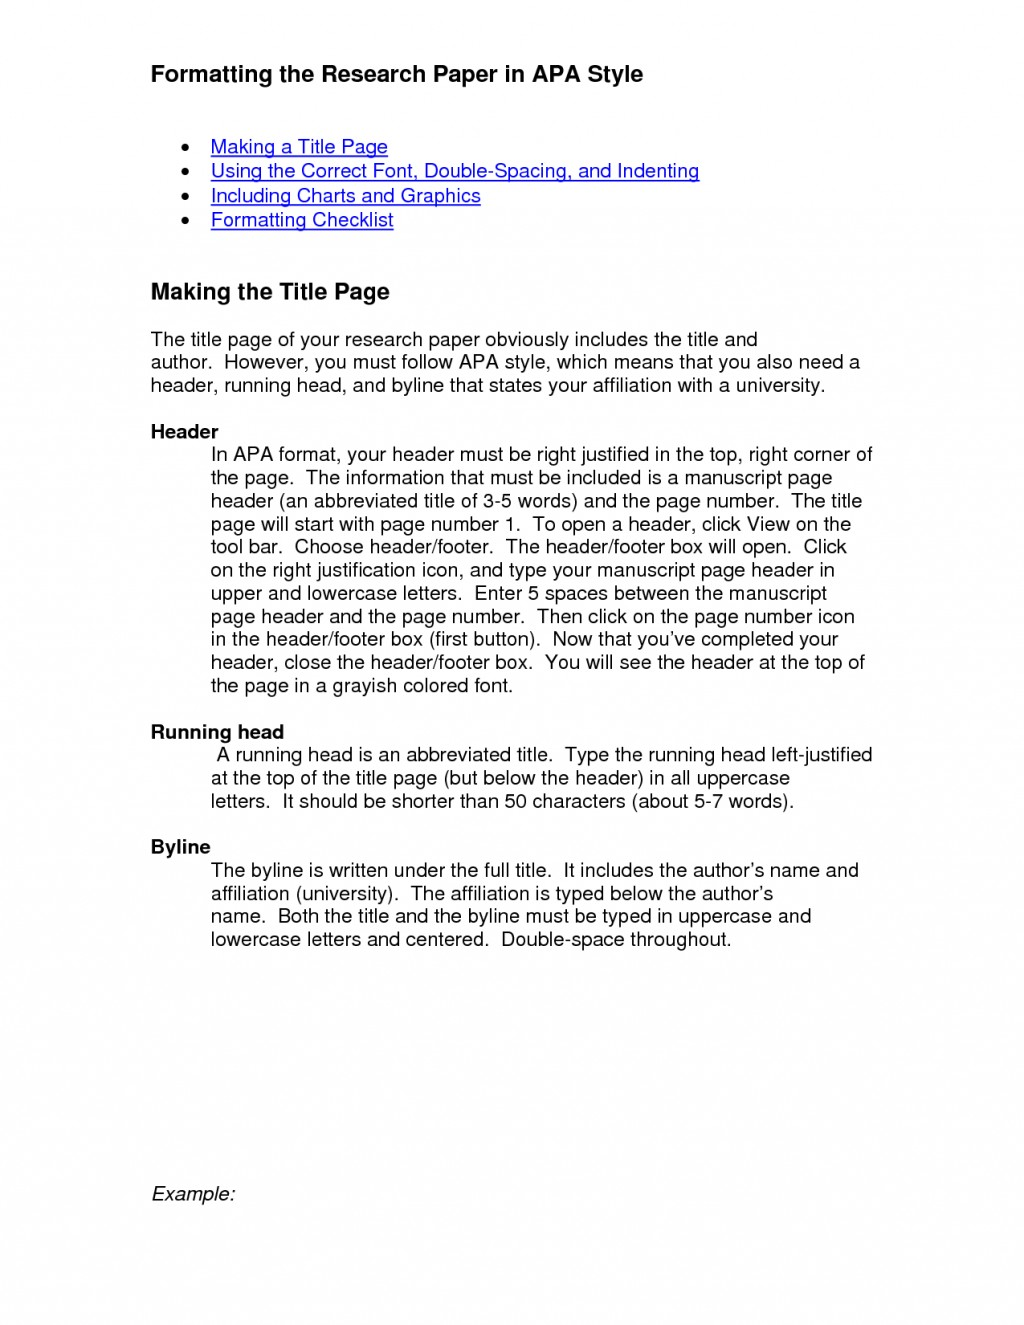 005 Research Paper 2mefq6rl5g How To Cite In Apa Fearsome A Style Write Bibliography For Format Large